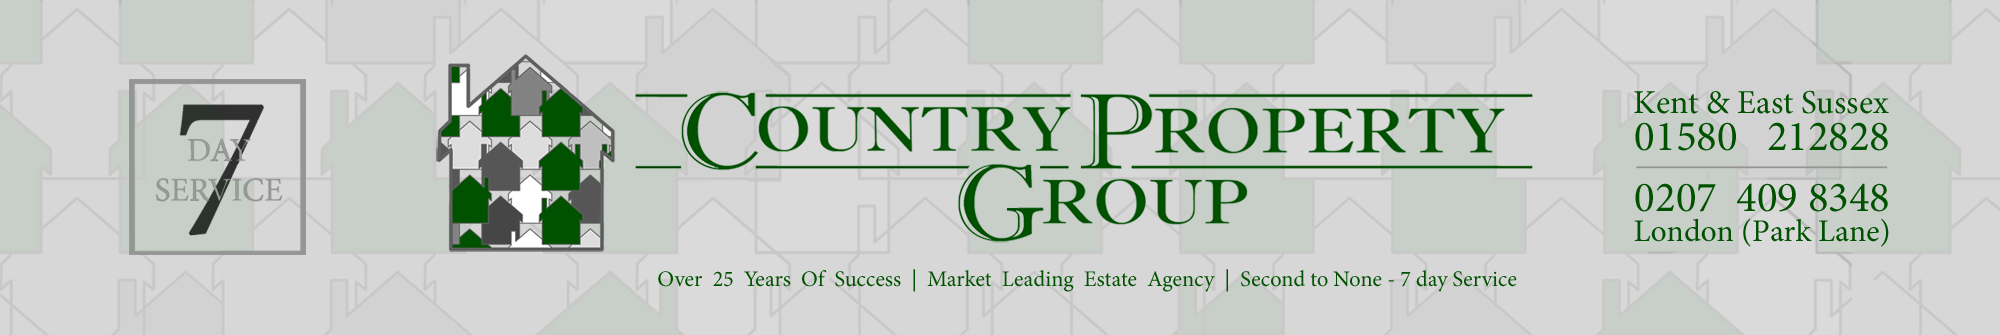 The Country Property Group